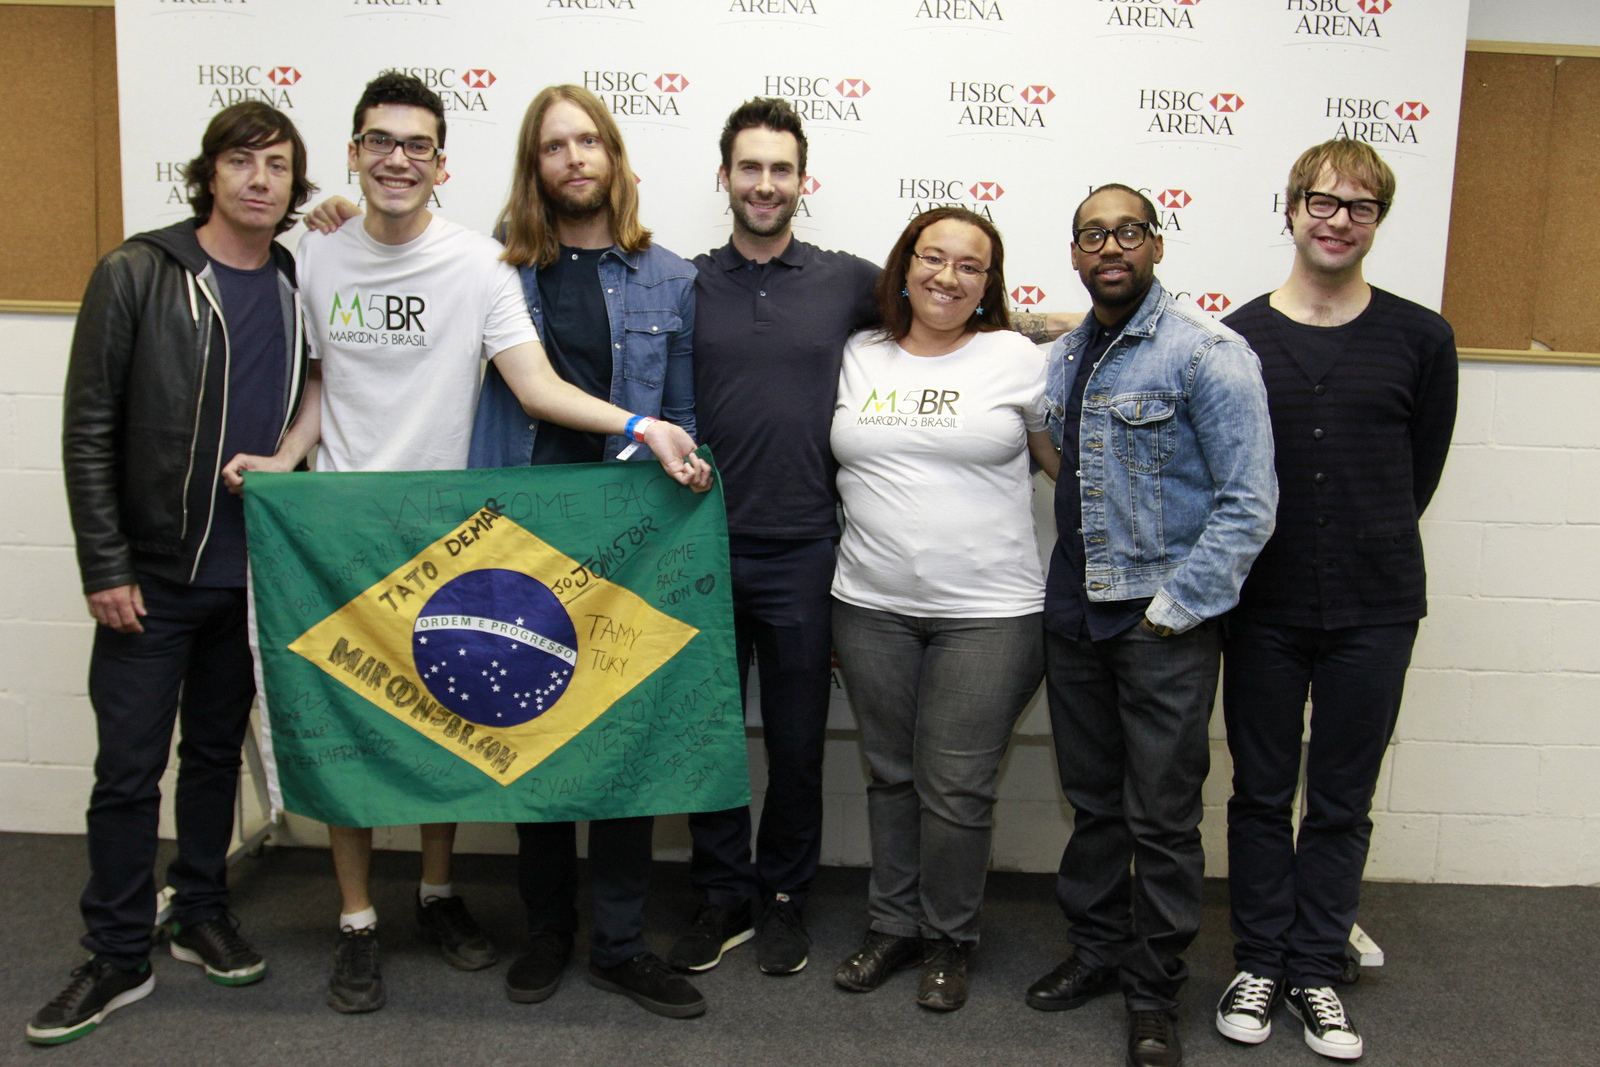 Maroon 5 meet and greet tickets gallery greeting card designs maroon 5 meet and greet tickets gallery greeting card designs maroon 5 meet and greet tickets m4hsunfo